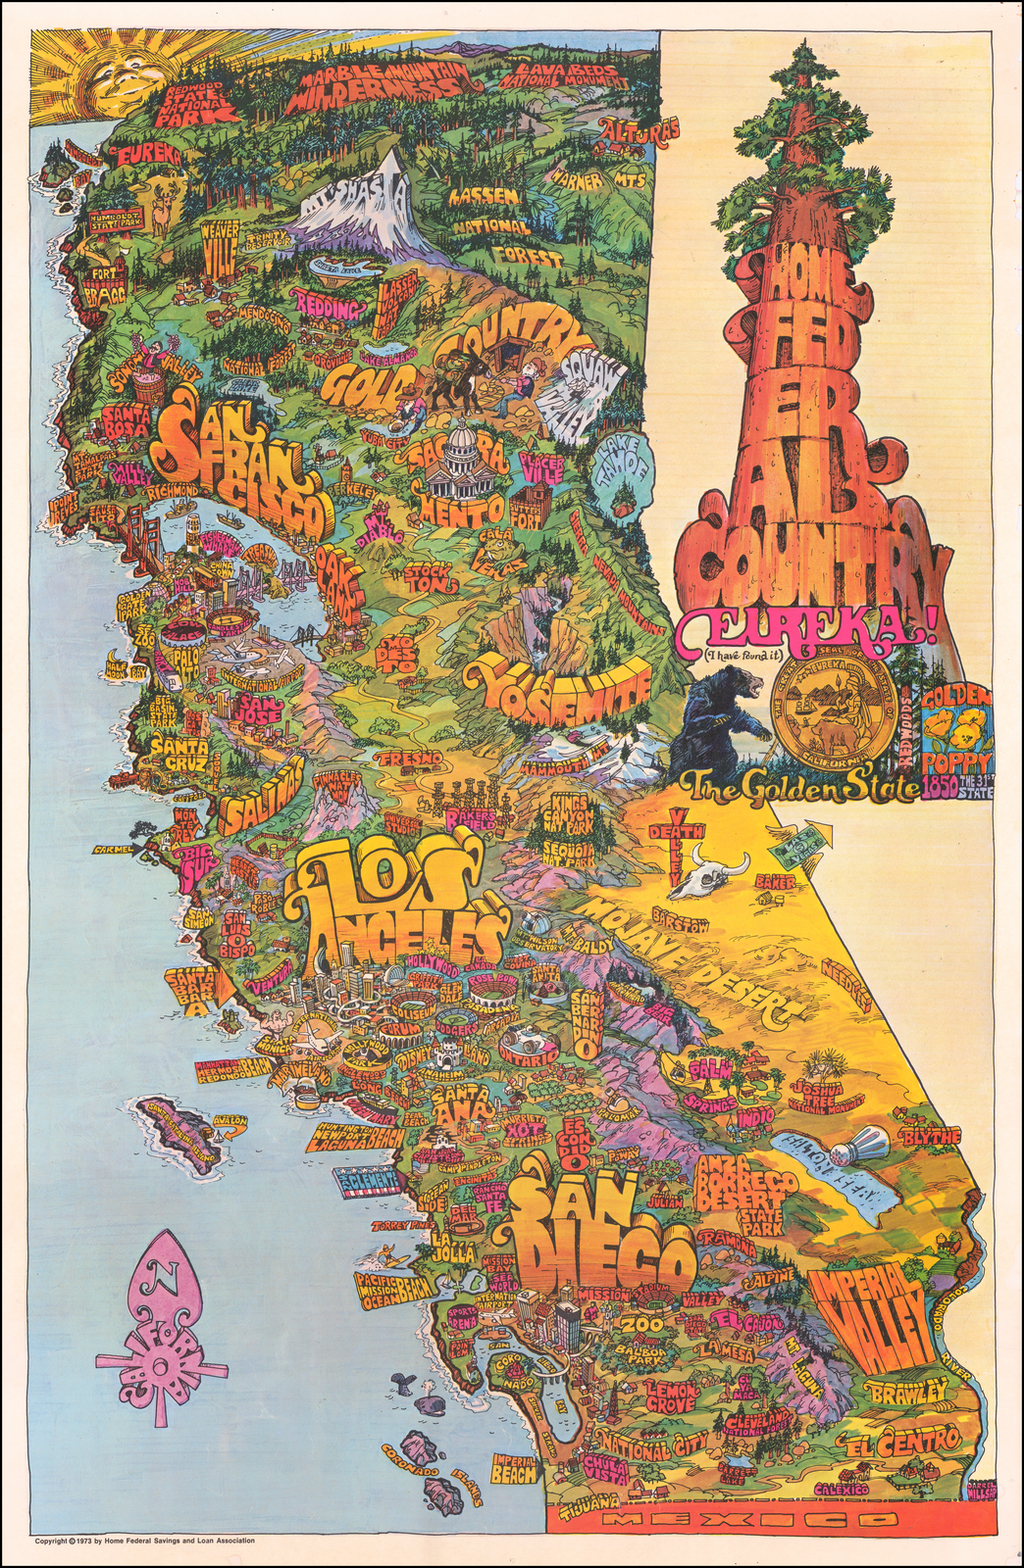 Home Federal Country. Eureka! The Golden State. California. By Darrel Millsap